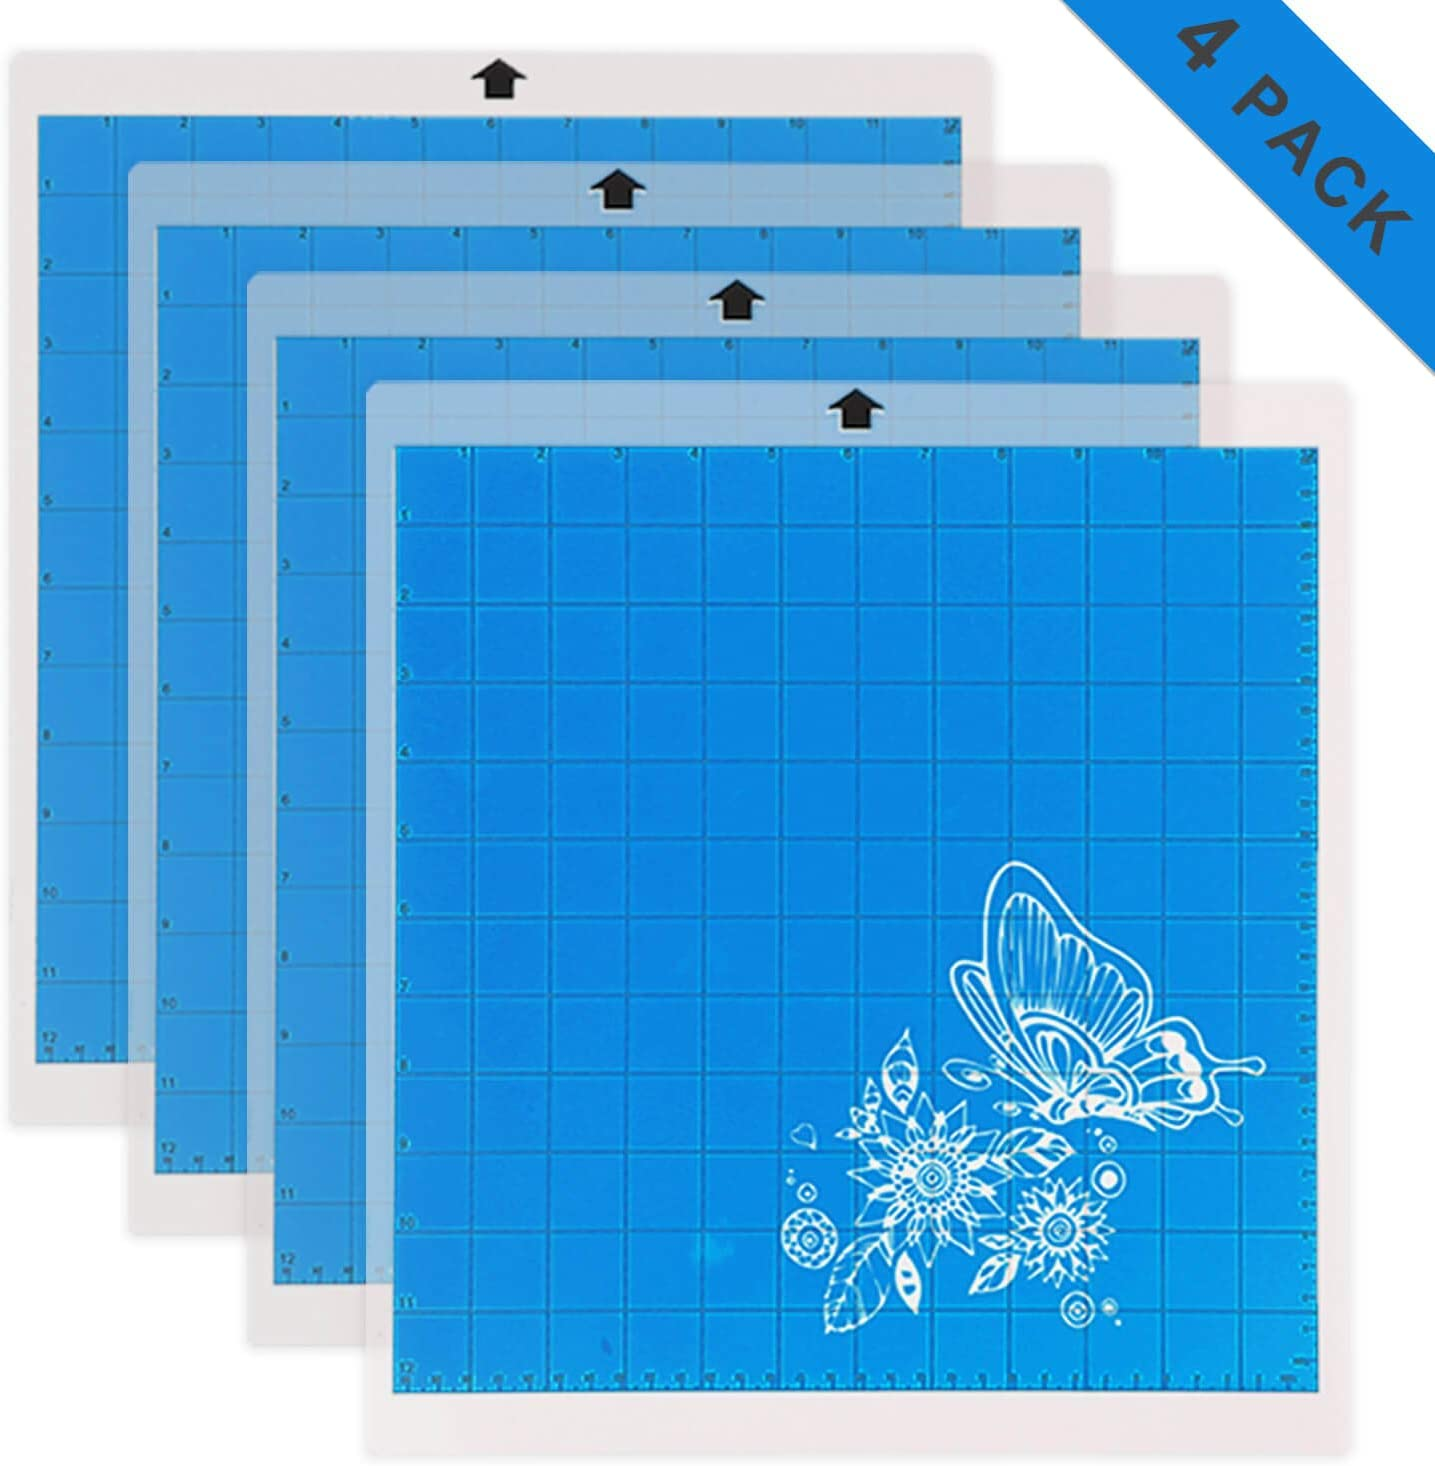 Adhesive Cutting Mat Replacement Set Matts Vinyl Craft Strong Grip Cutting Mat for Cricut for Silhouette Cameo 4 Packs 12 x 12